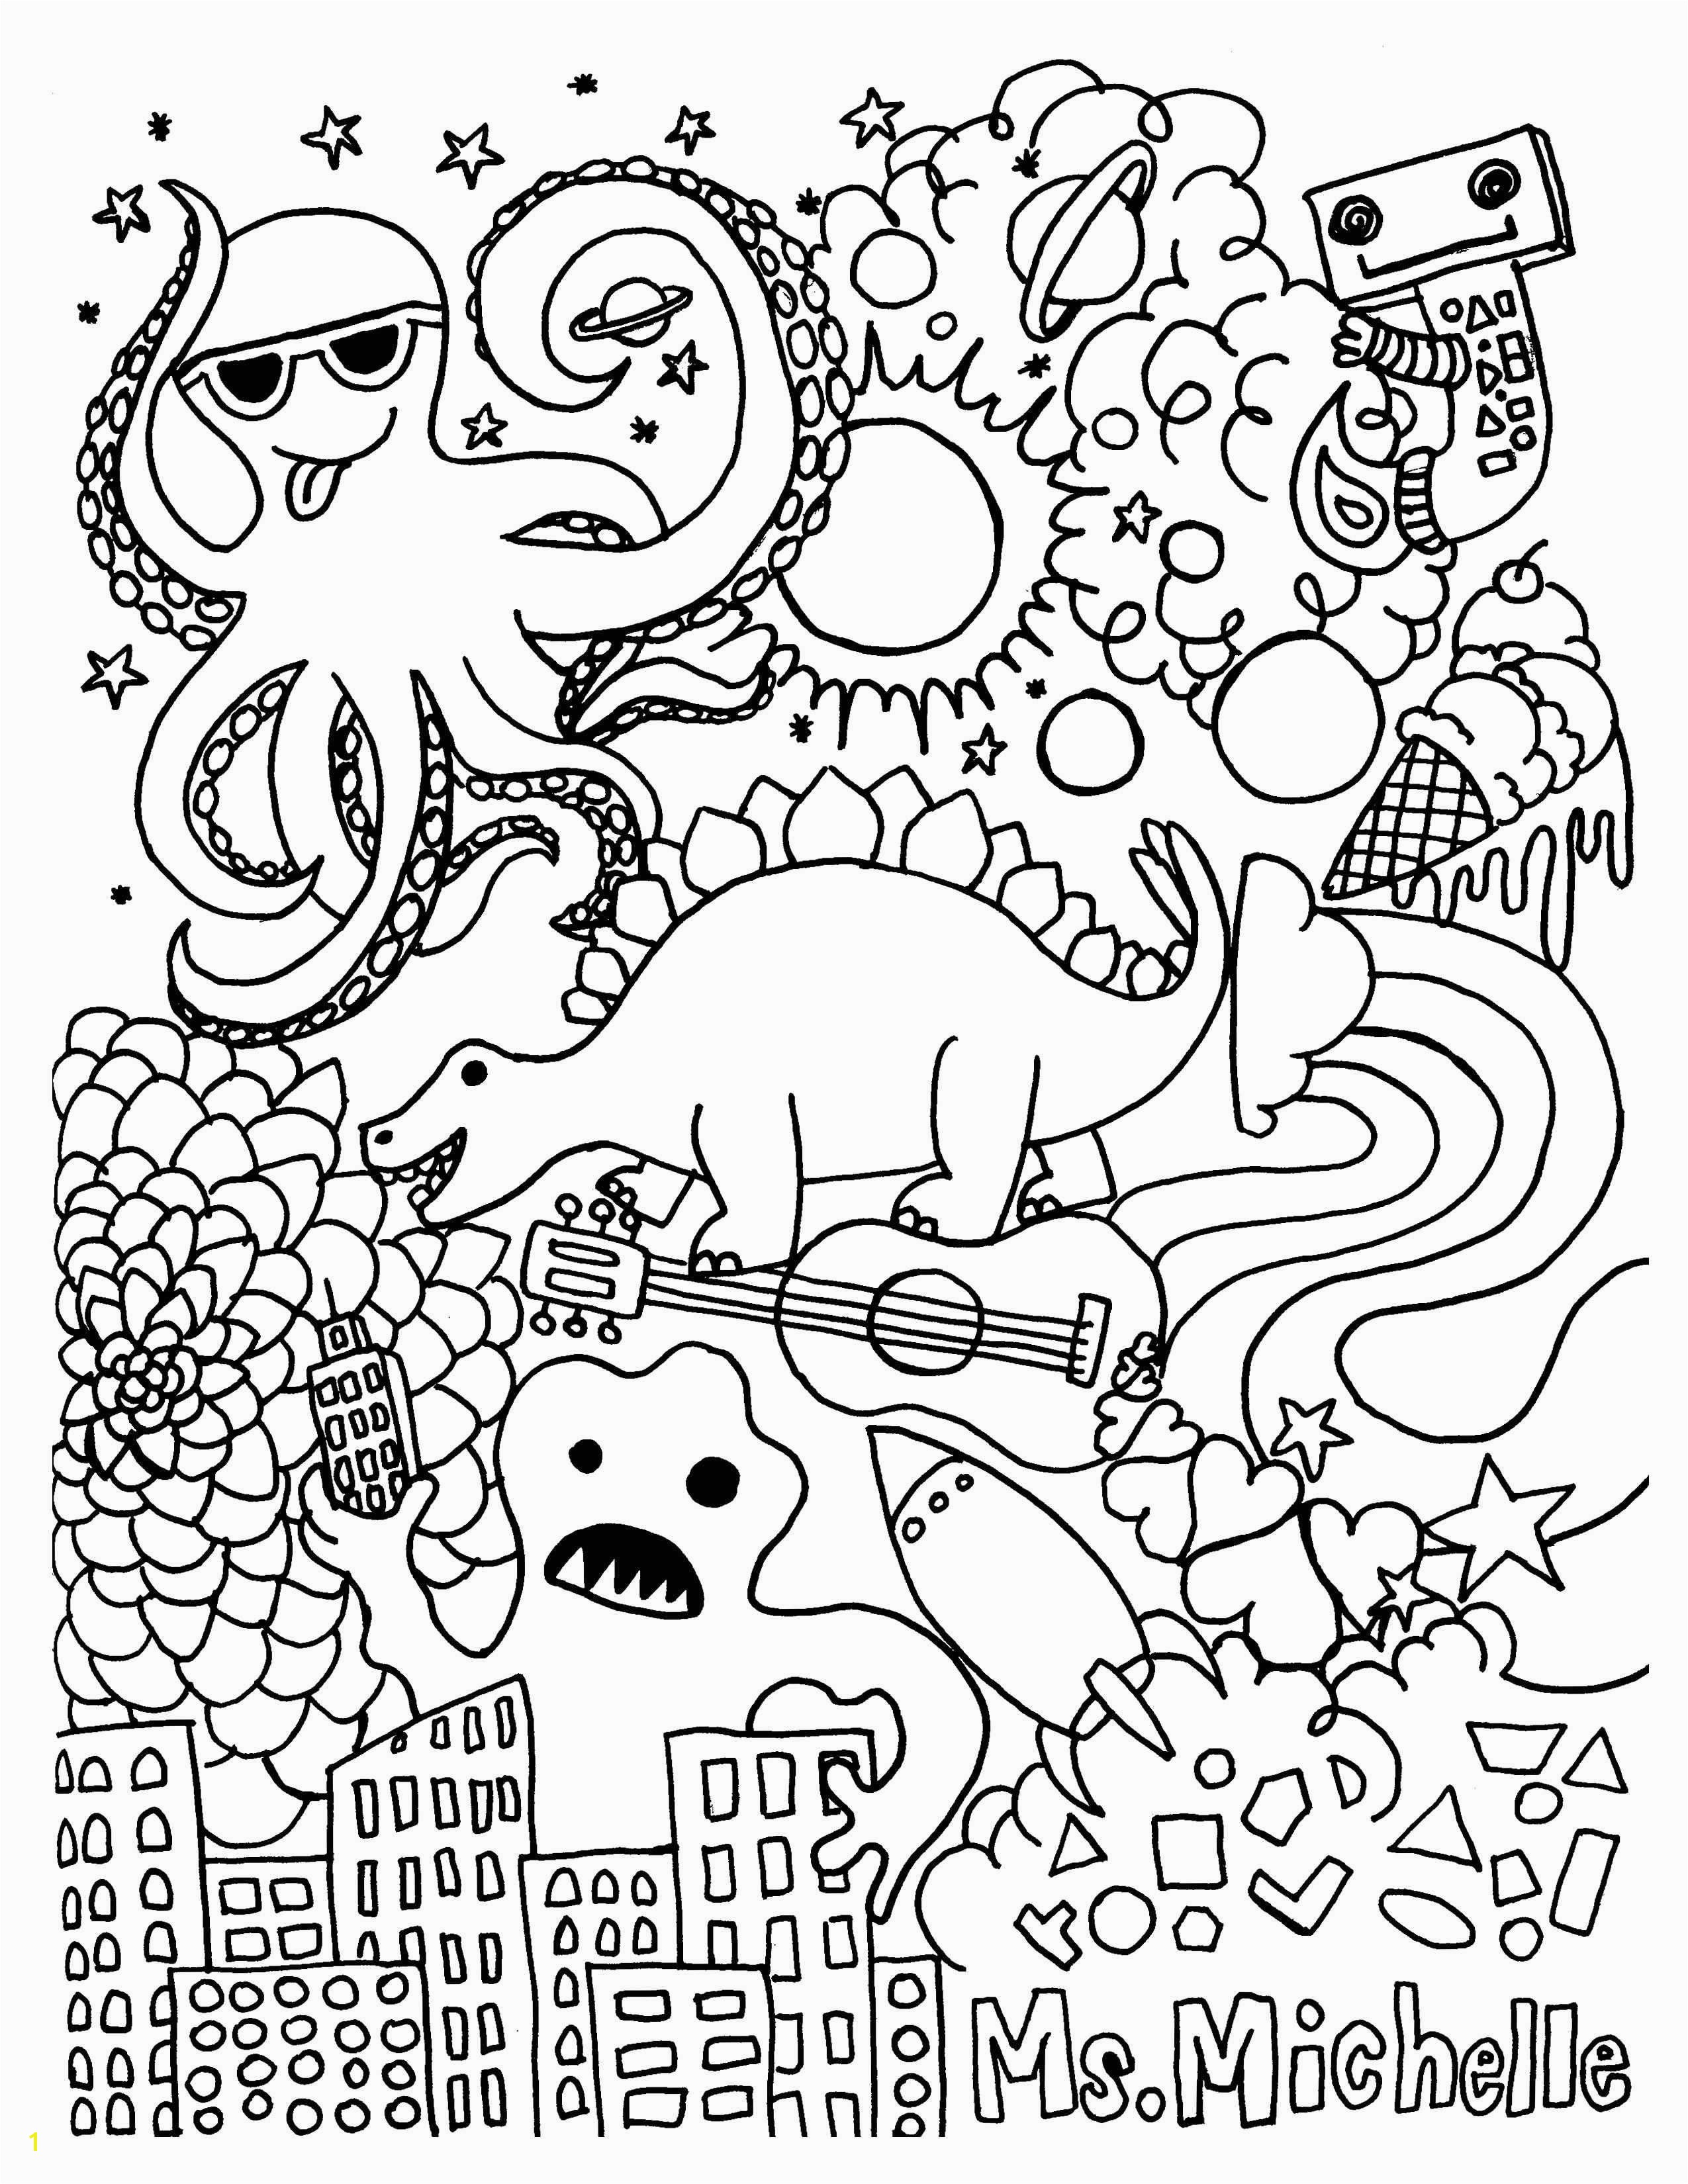 Jesus Christ Christmas Coloring Pages With Free Printable For Sunday School